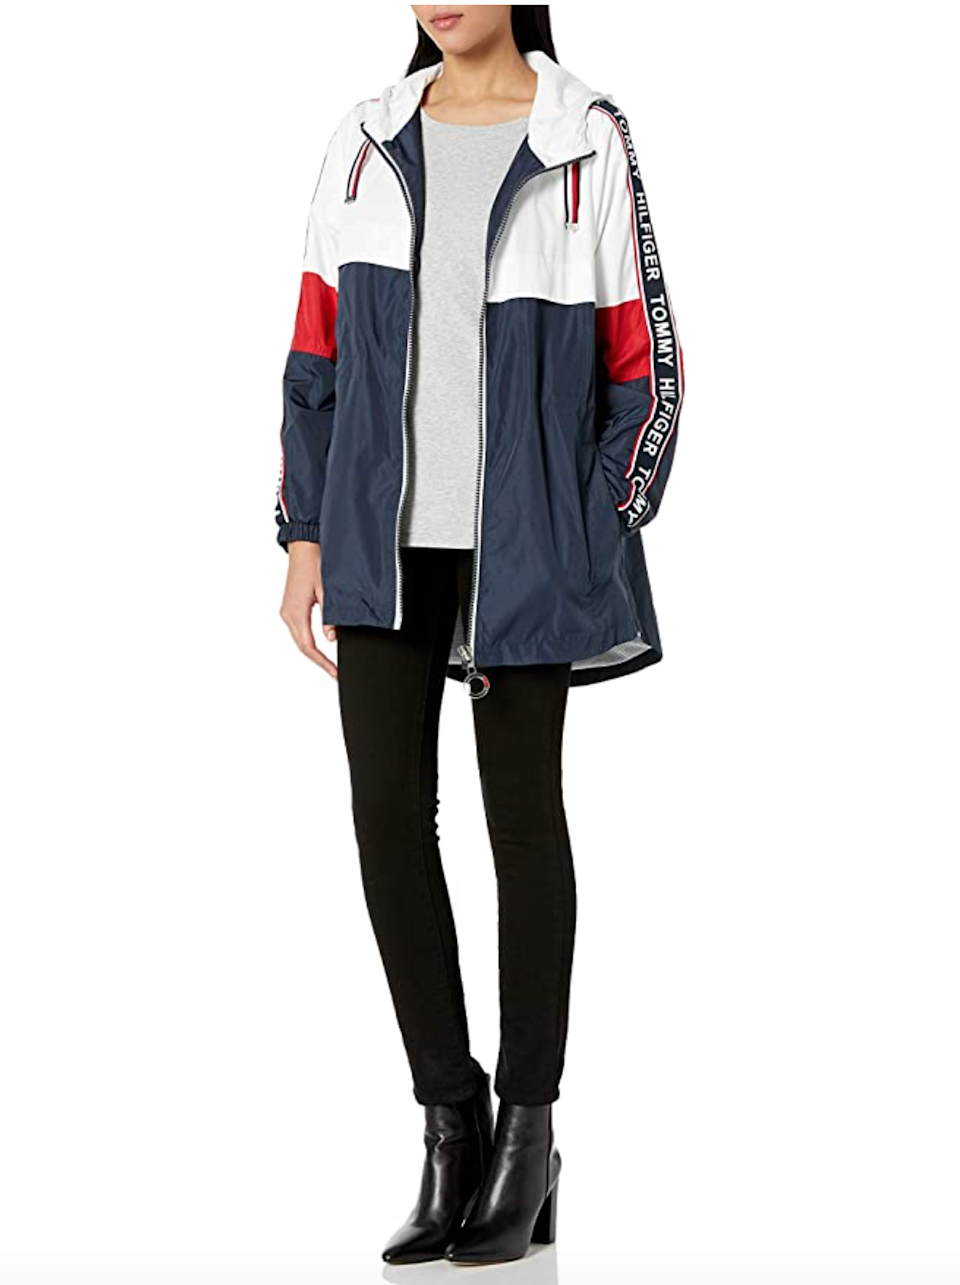 "<h2>Up To 30% Off Tommy Hilfiger</h2><br>Discount applies to select <a href=""https://amzn.to/34Webxu"" rel=""nofollow noopener"" target=""_blank"" data-ylk=""slk:Tommy Hilfiger shoes and apparel"" class=""link rapid-noclick-resp"">Tommy Hilfiger shoes and apparel</a>. <br><br><strong>Tommy Hilfiger</strong> Anorak Jacket with Logo Sleeve Taping, $, available at <a href=""https://amzn.to/3dlRBlM"" rel=""nofollow noopener"" target=""_blank"" data-ylk=""slk:Amazon Fashion"" class=""link rapid-noclick-resp"">Amazon Fashion</a>"